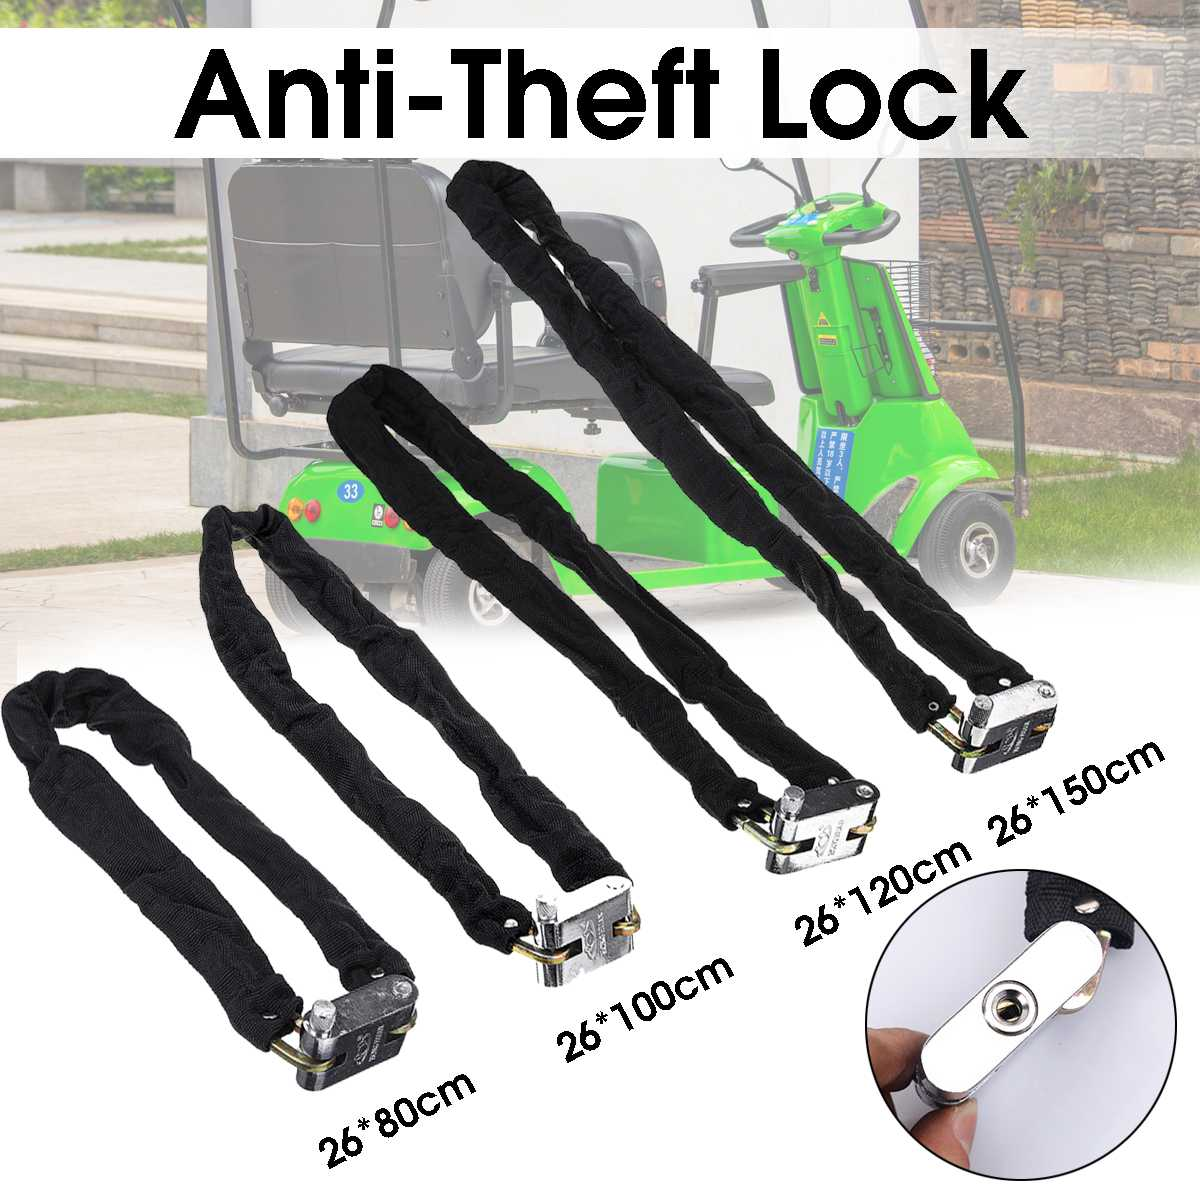 Motorcycle Anti-Theft Lock Outdoor Bike Metal Safe Chain Lock Security Reinforced Fabric Bicycle Scooter Door Chain Lock